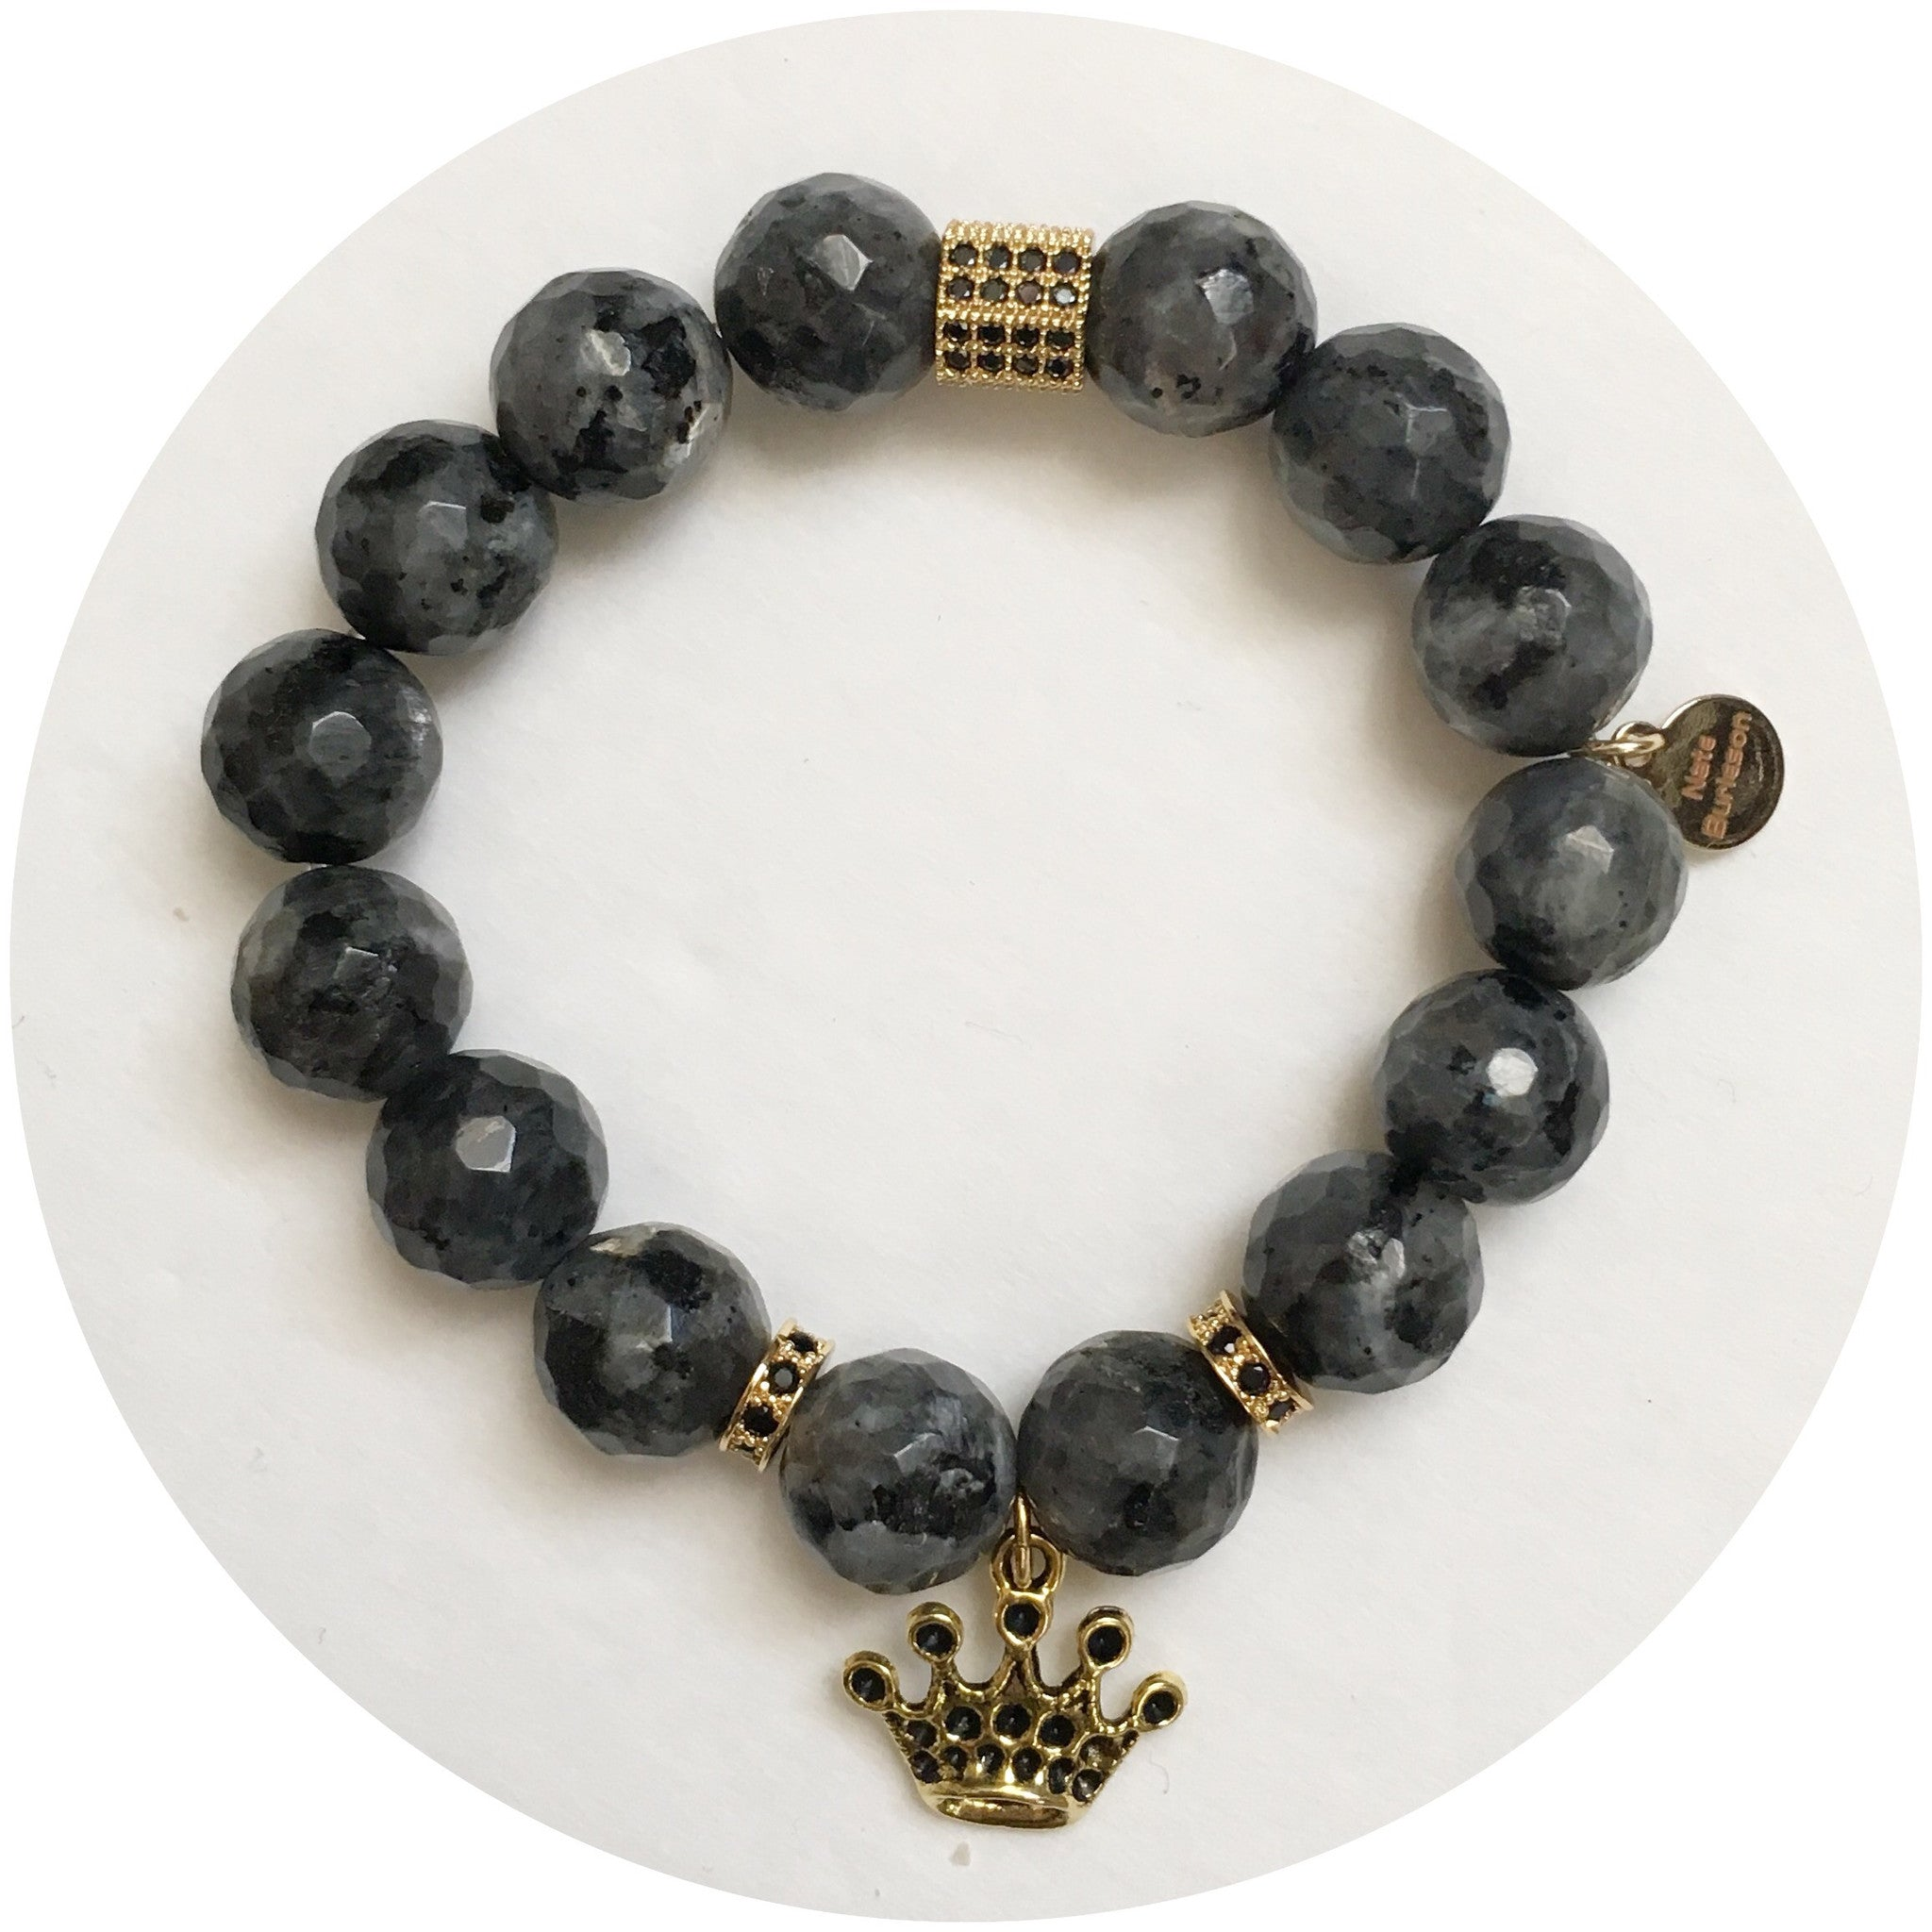 Nate B. Labradorite Royal Highness Crown - Oriana Lamarca LLC